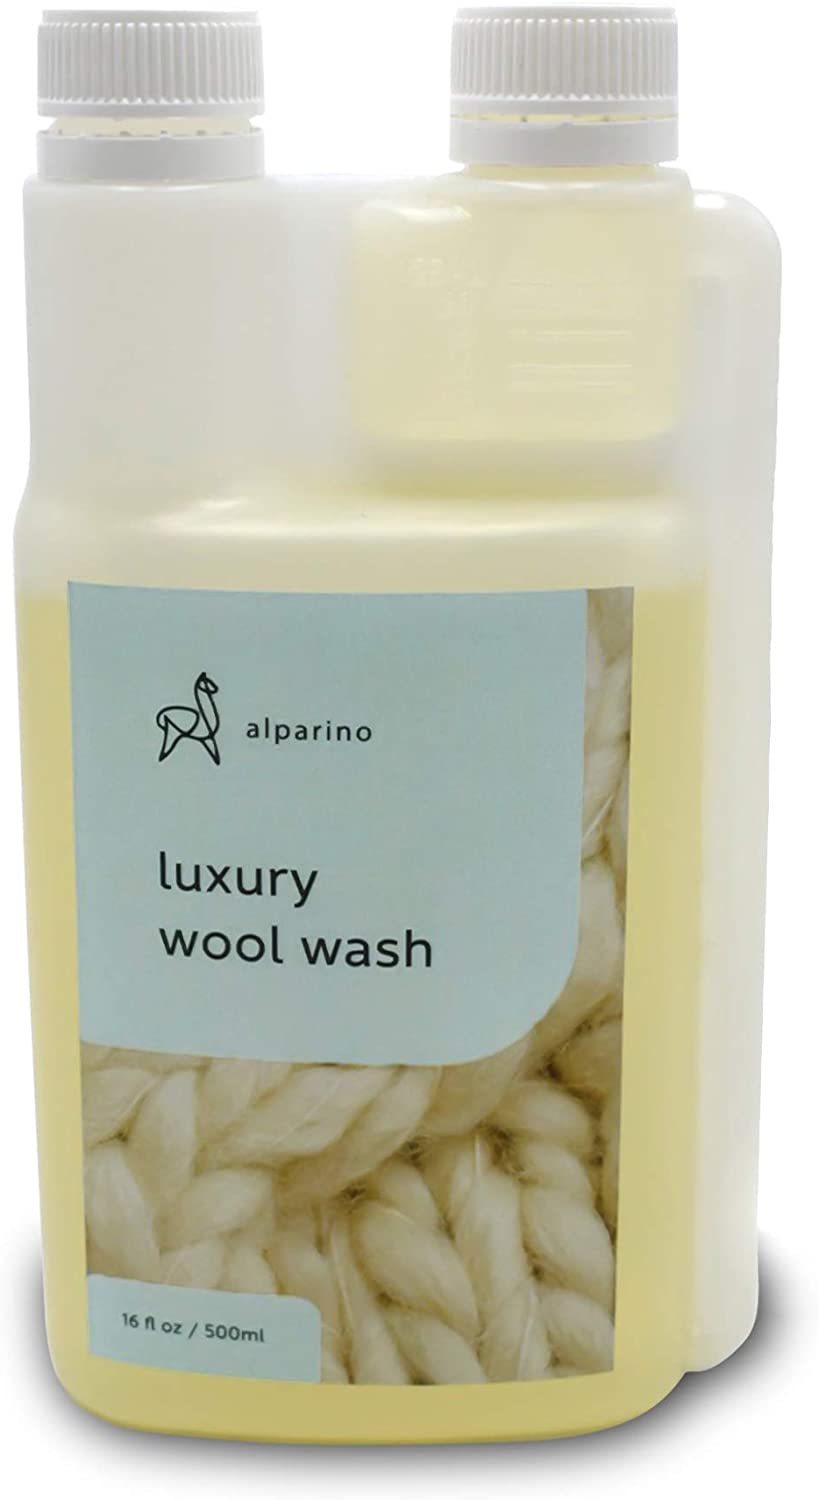 Alparino Wool Wash. Gentle and Natural Laundry Detergent for Cashmere, Wool, Alpaca and Sheepskin